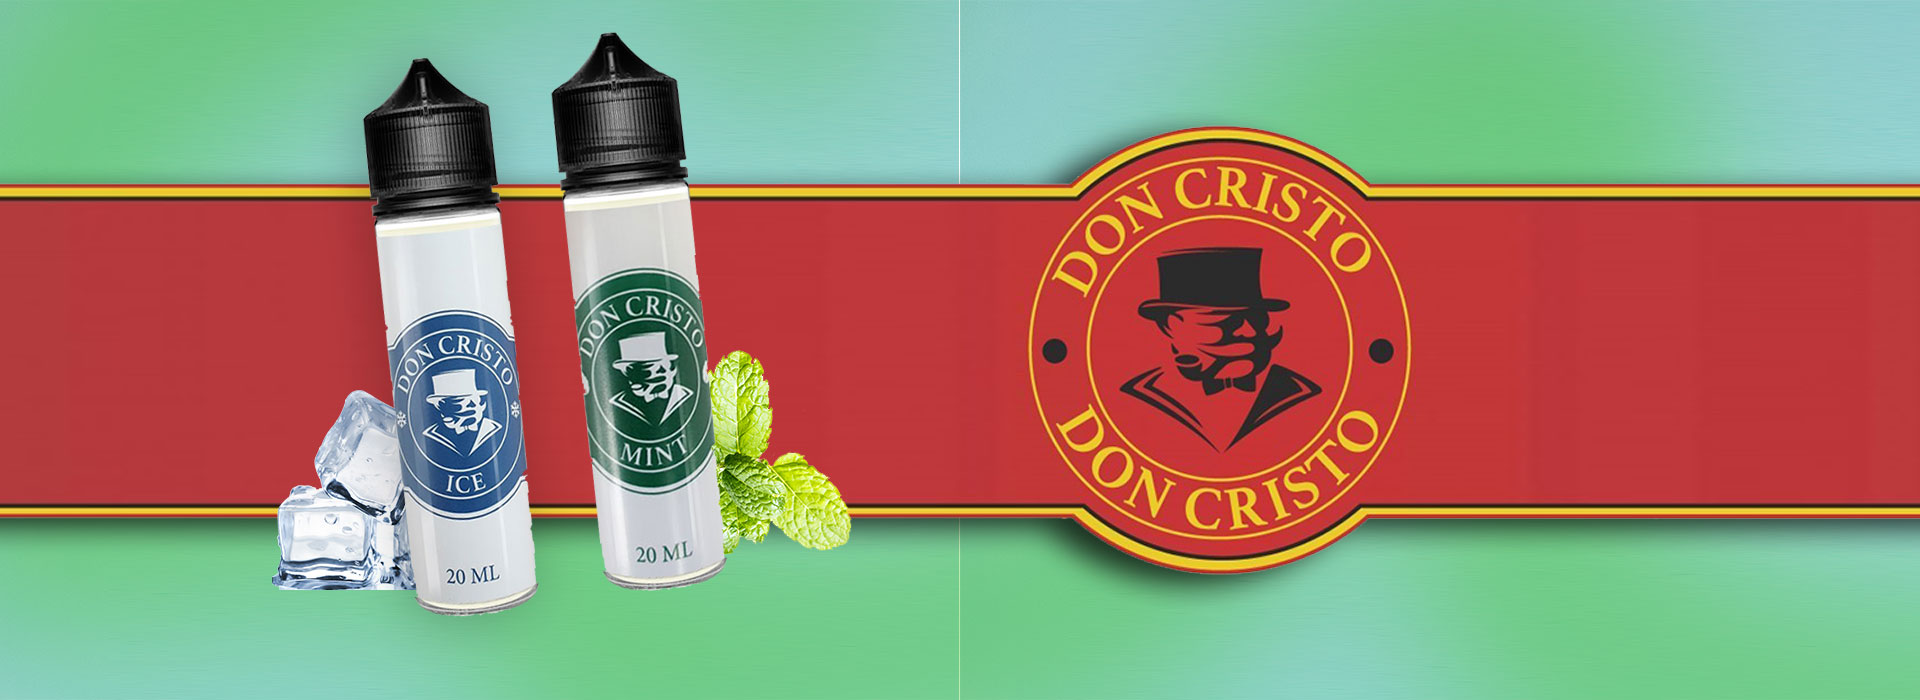 PGVG Labs Don Cristo Mint e Don Cristo Ice